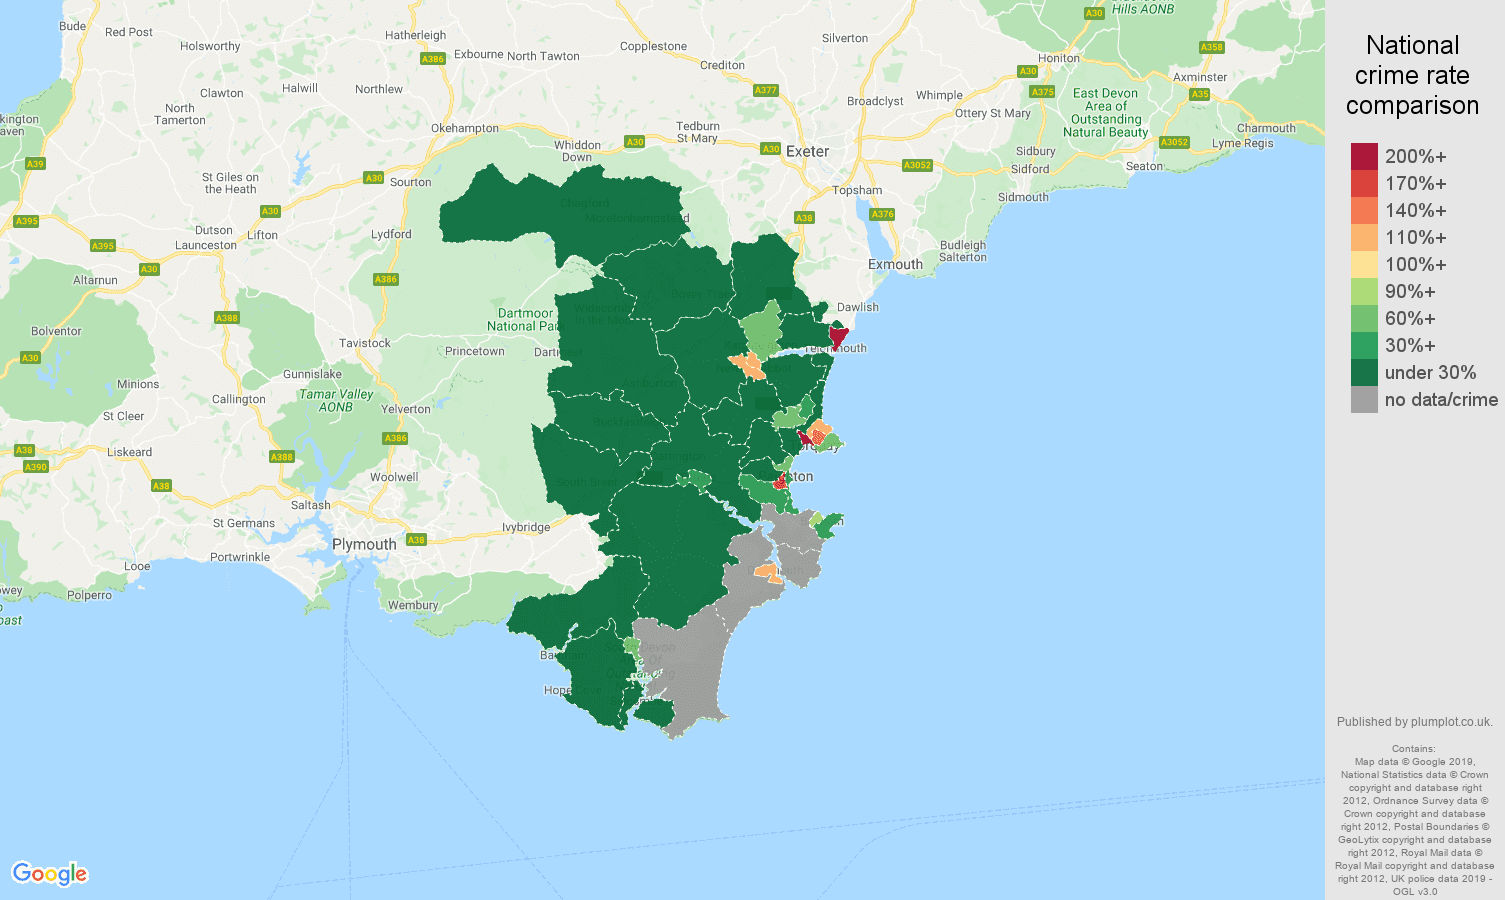 Torquay shoplifting crime rate comparison map